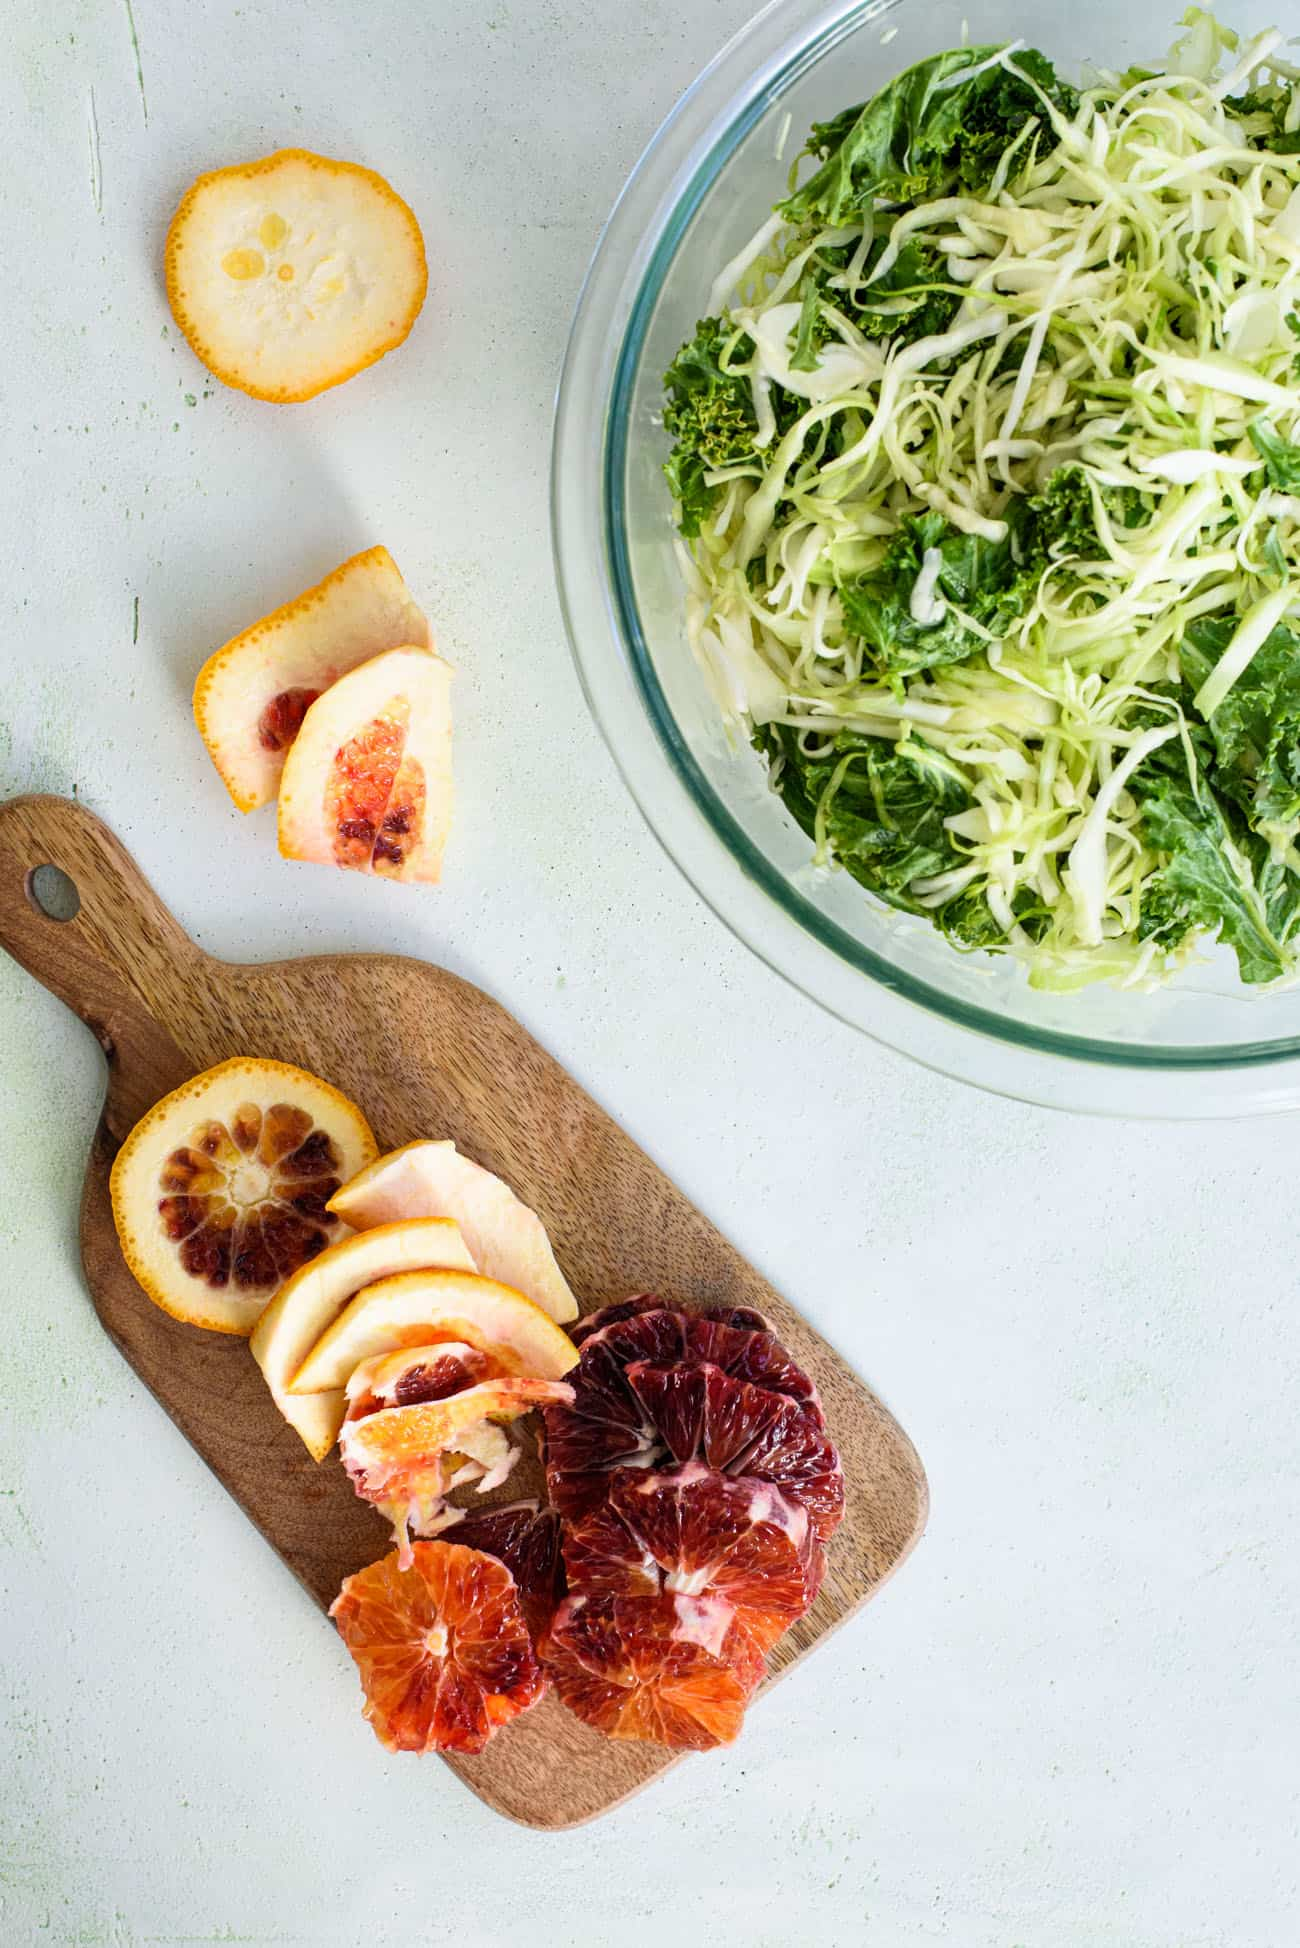 Peeled blood orange on a small cutting board next to a bowl of cabbage and kale